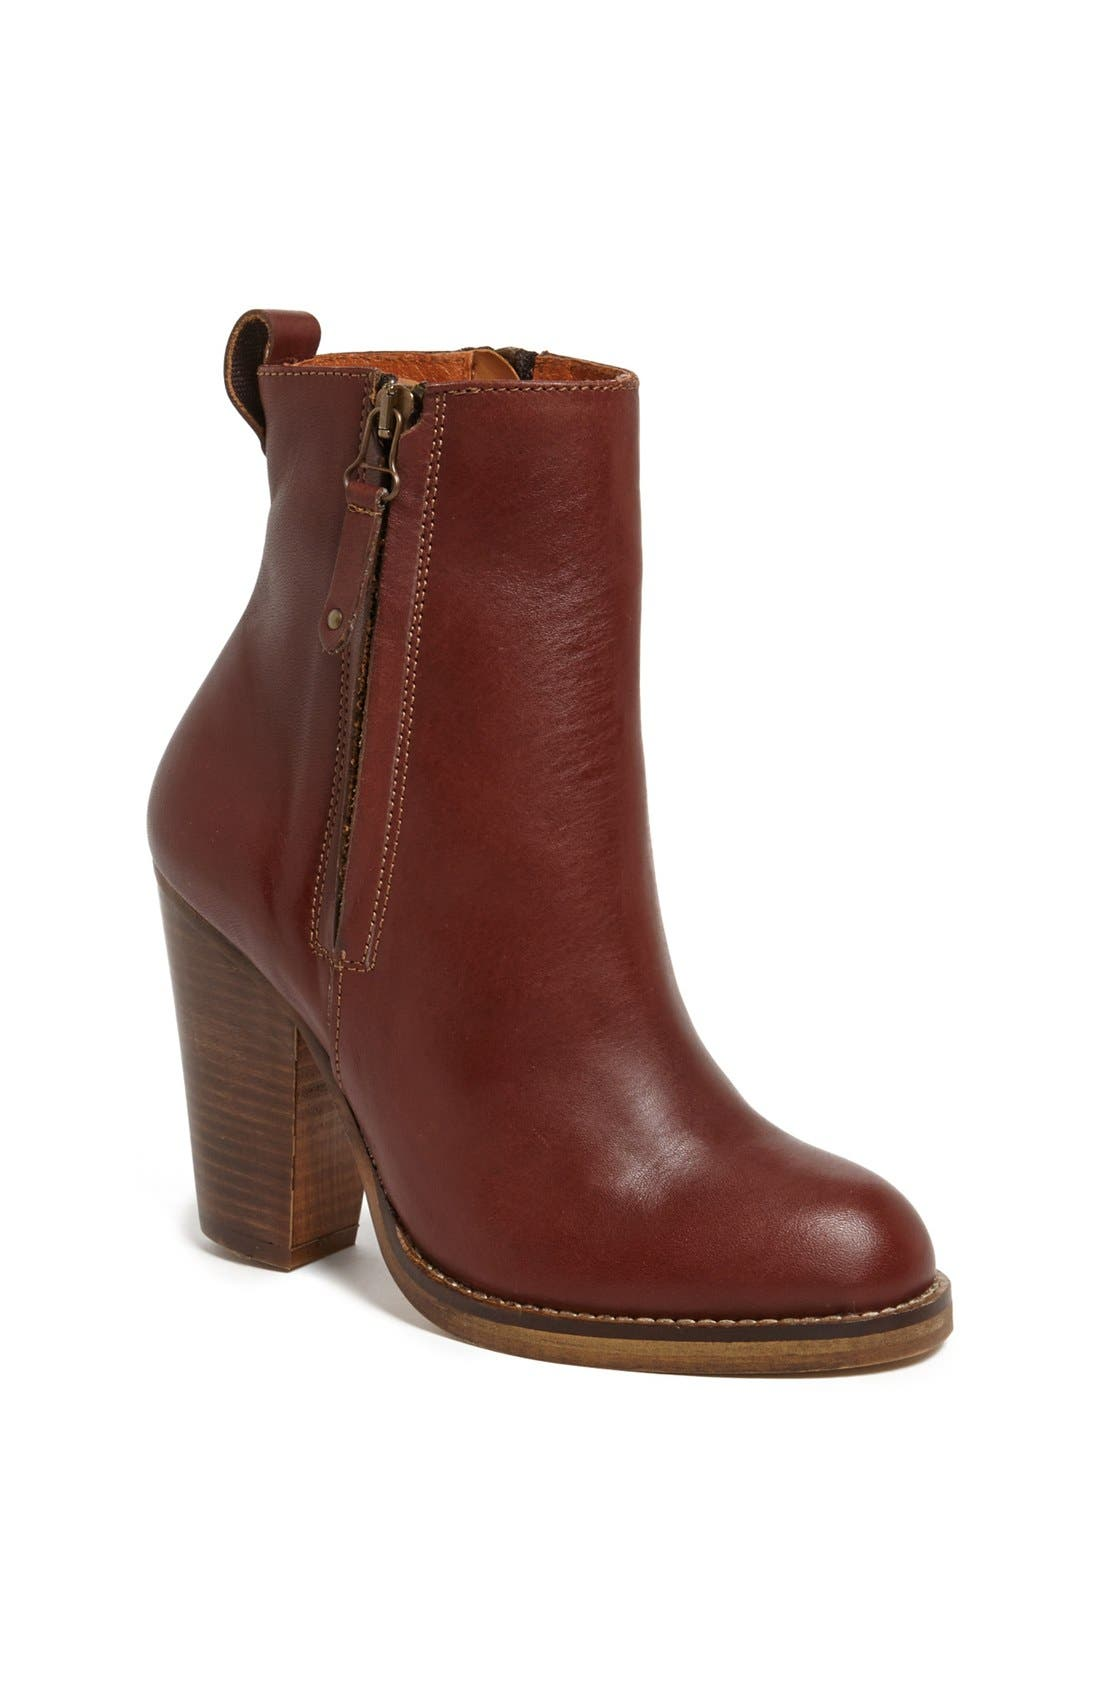 Alternate Image 1 Selected - Topshop 'Angel' Leather Boot